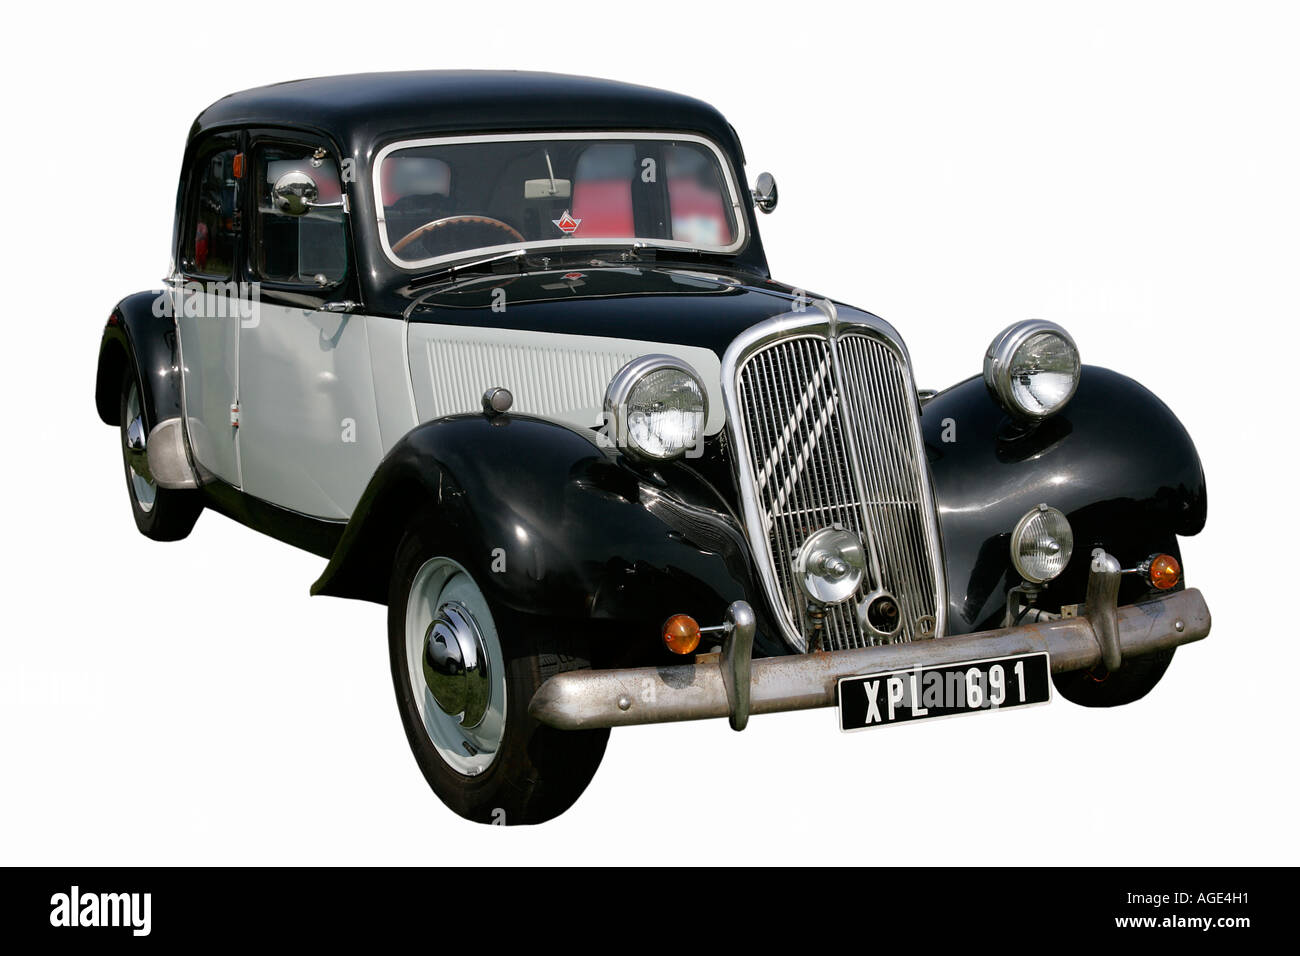 classic car Citroen old history vehicle vintage antipodes symbol ...